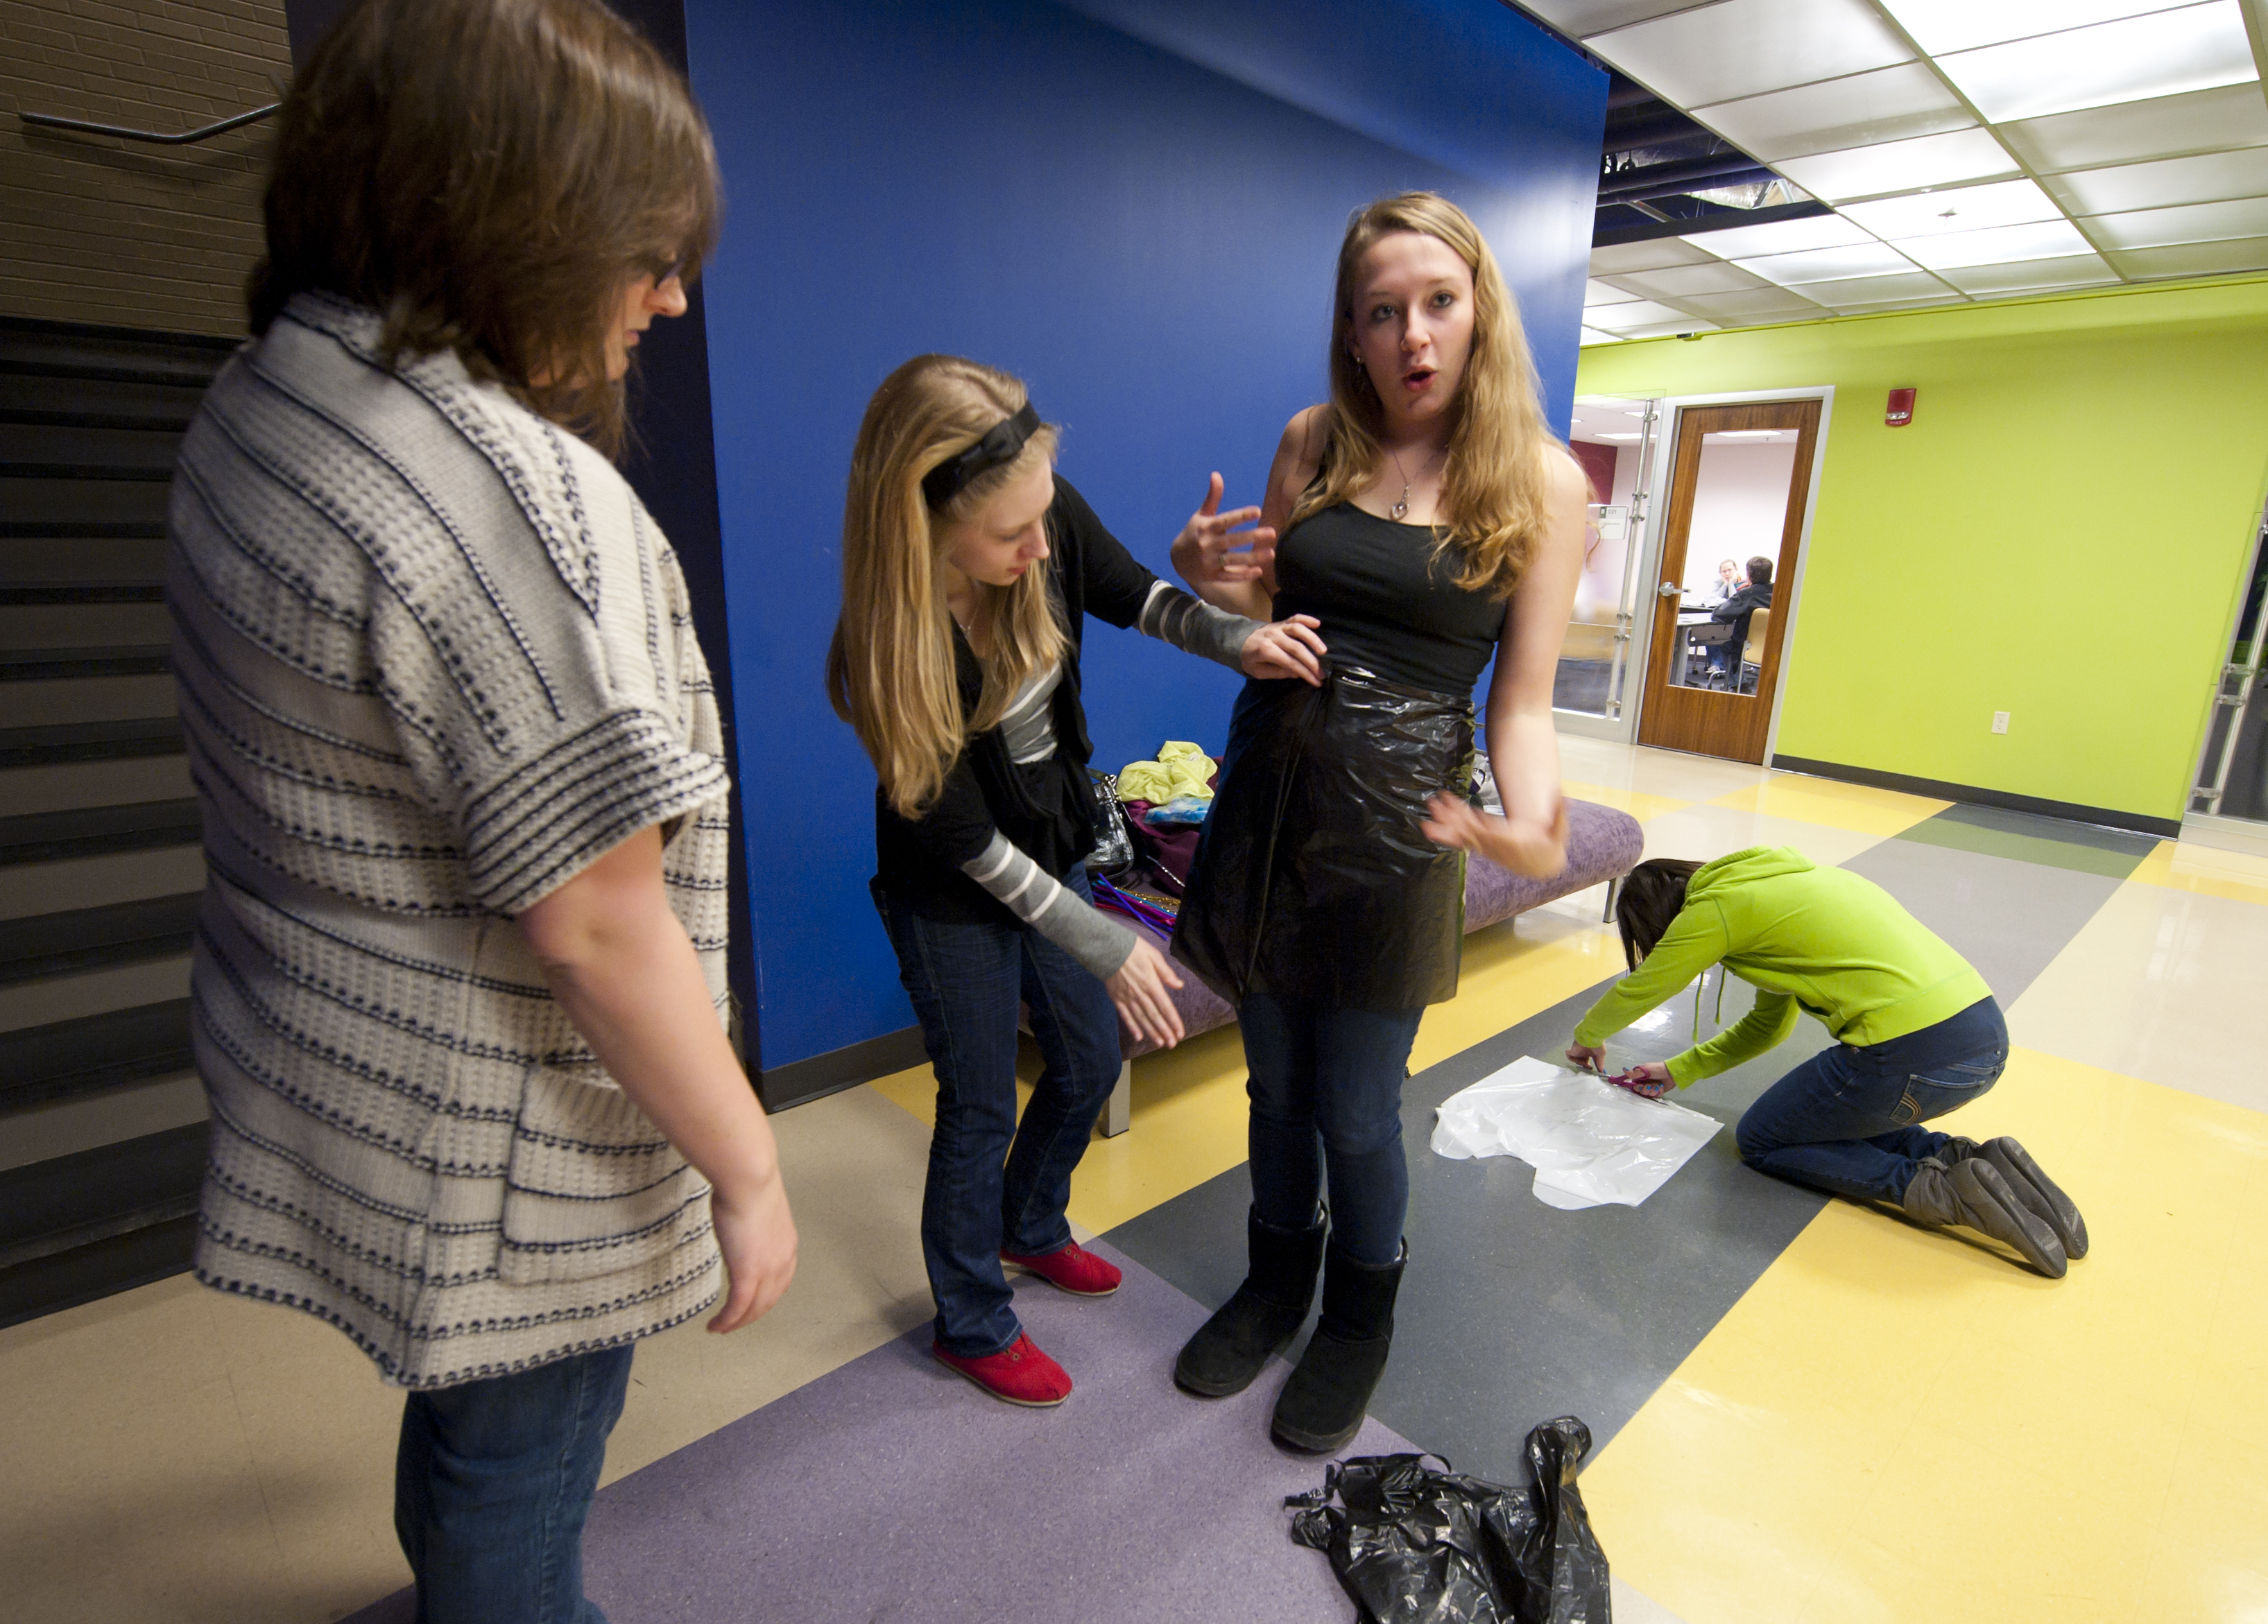 Student tries on trashbag for Project Runway.